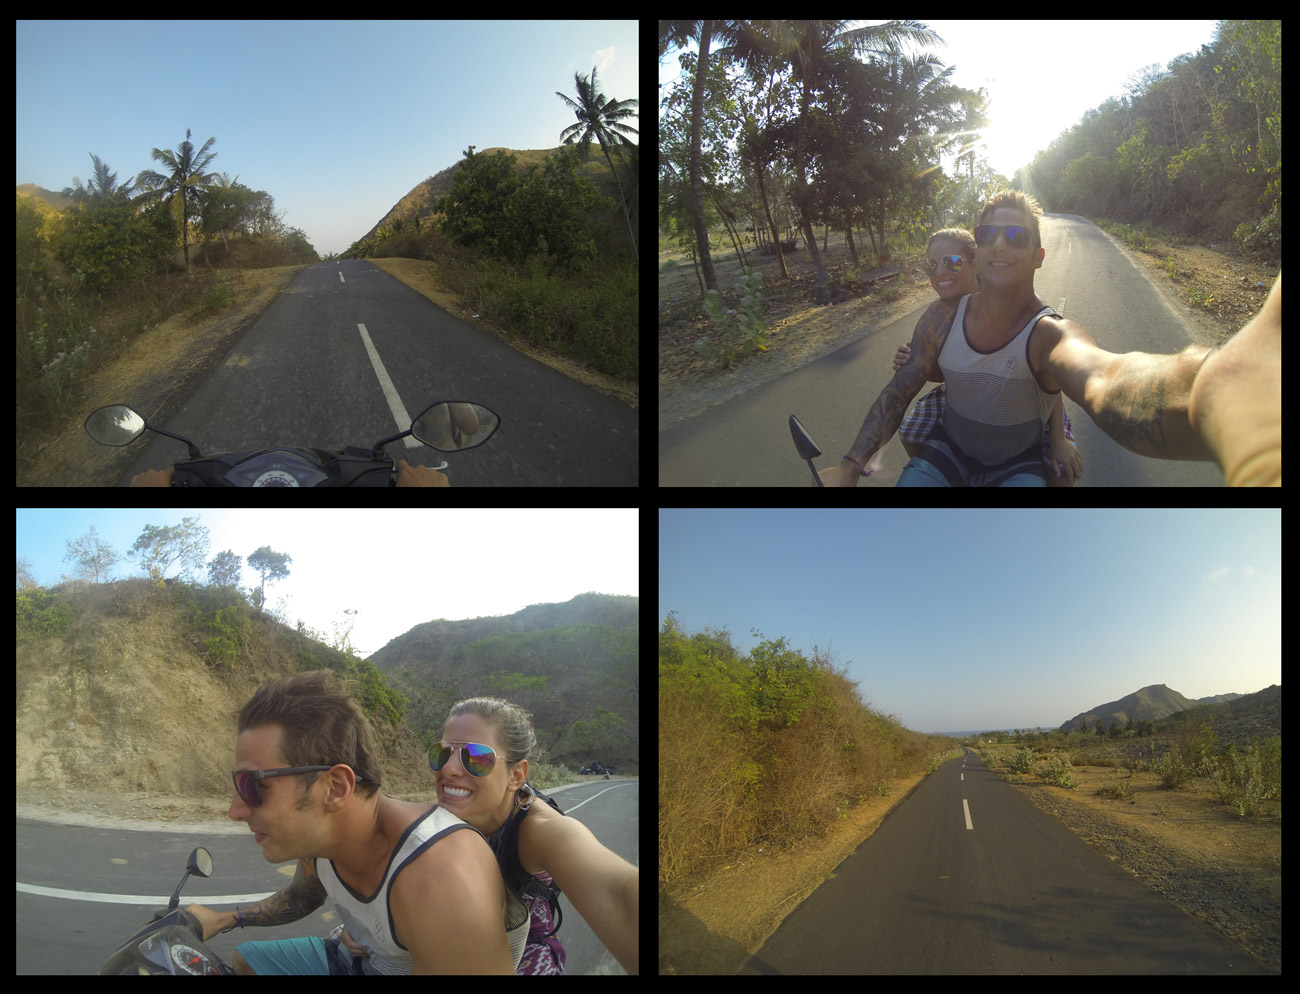 Moped Shenanigans on the empty roads!